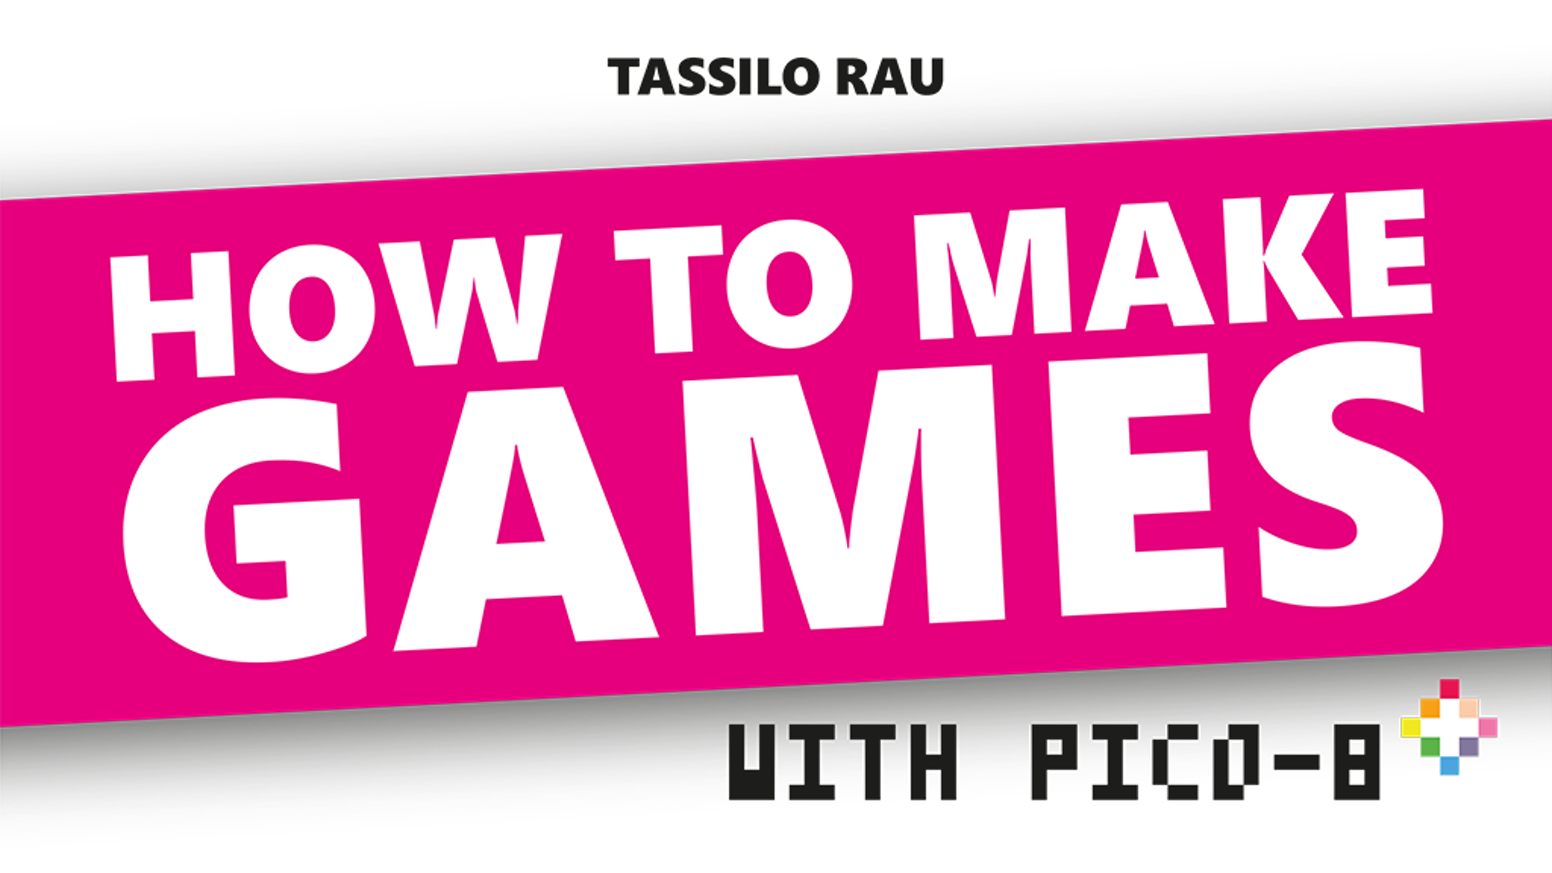 HOW TO MAKE GAMES with PICO-8